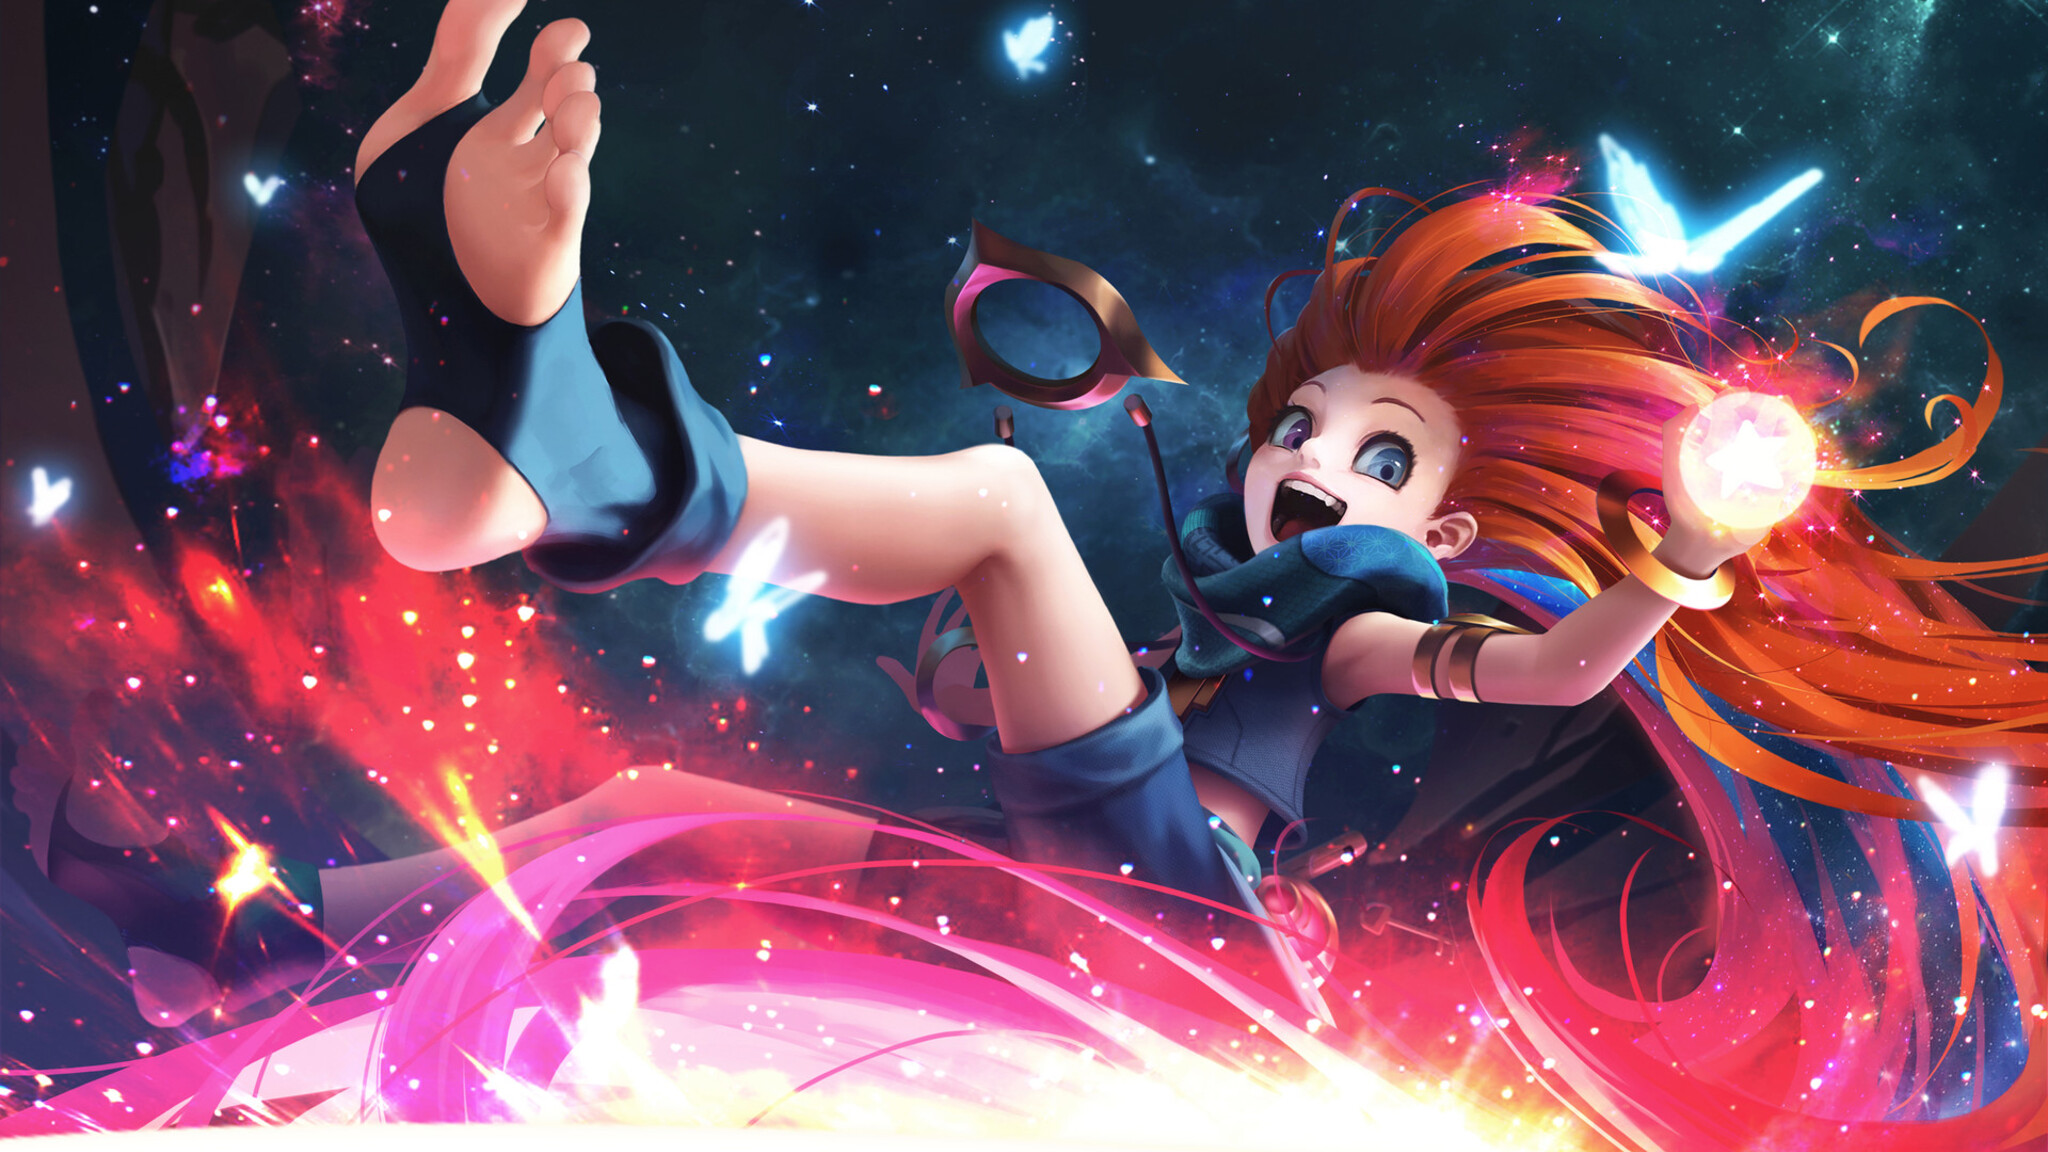 2048x1152 zoe league of legends hd 2048x1152 resolution hd - Zoe wallpaper ...